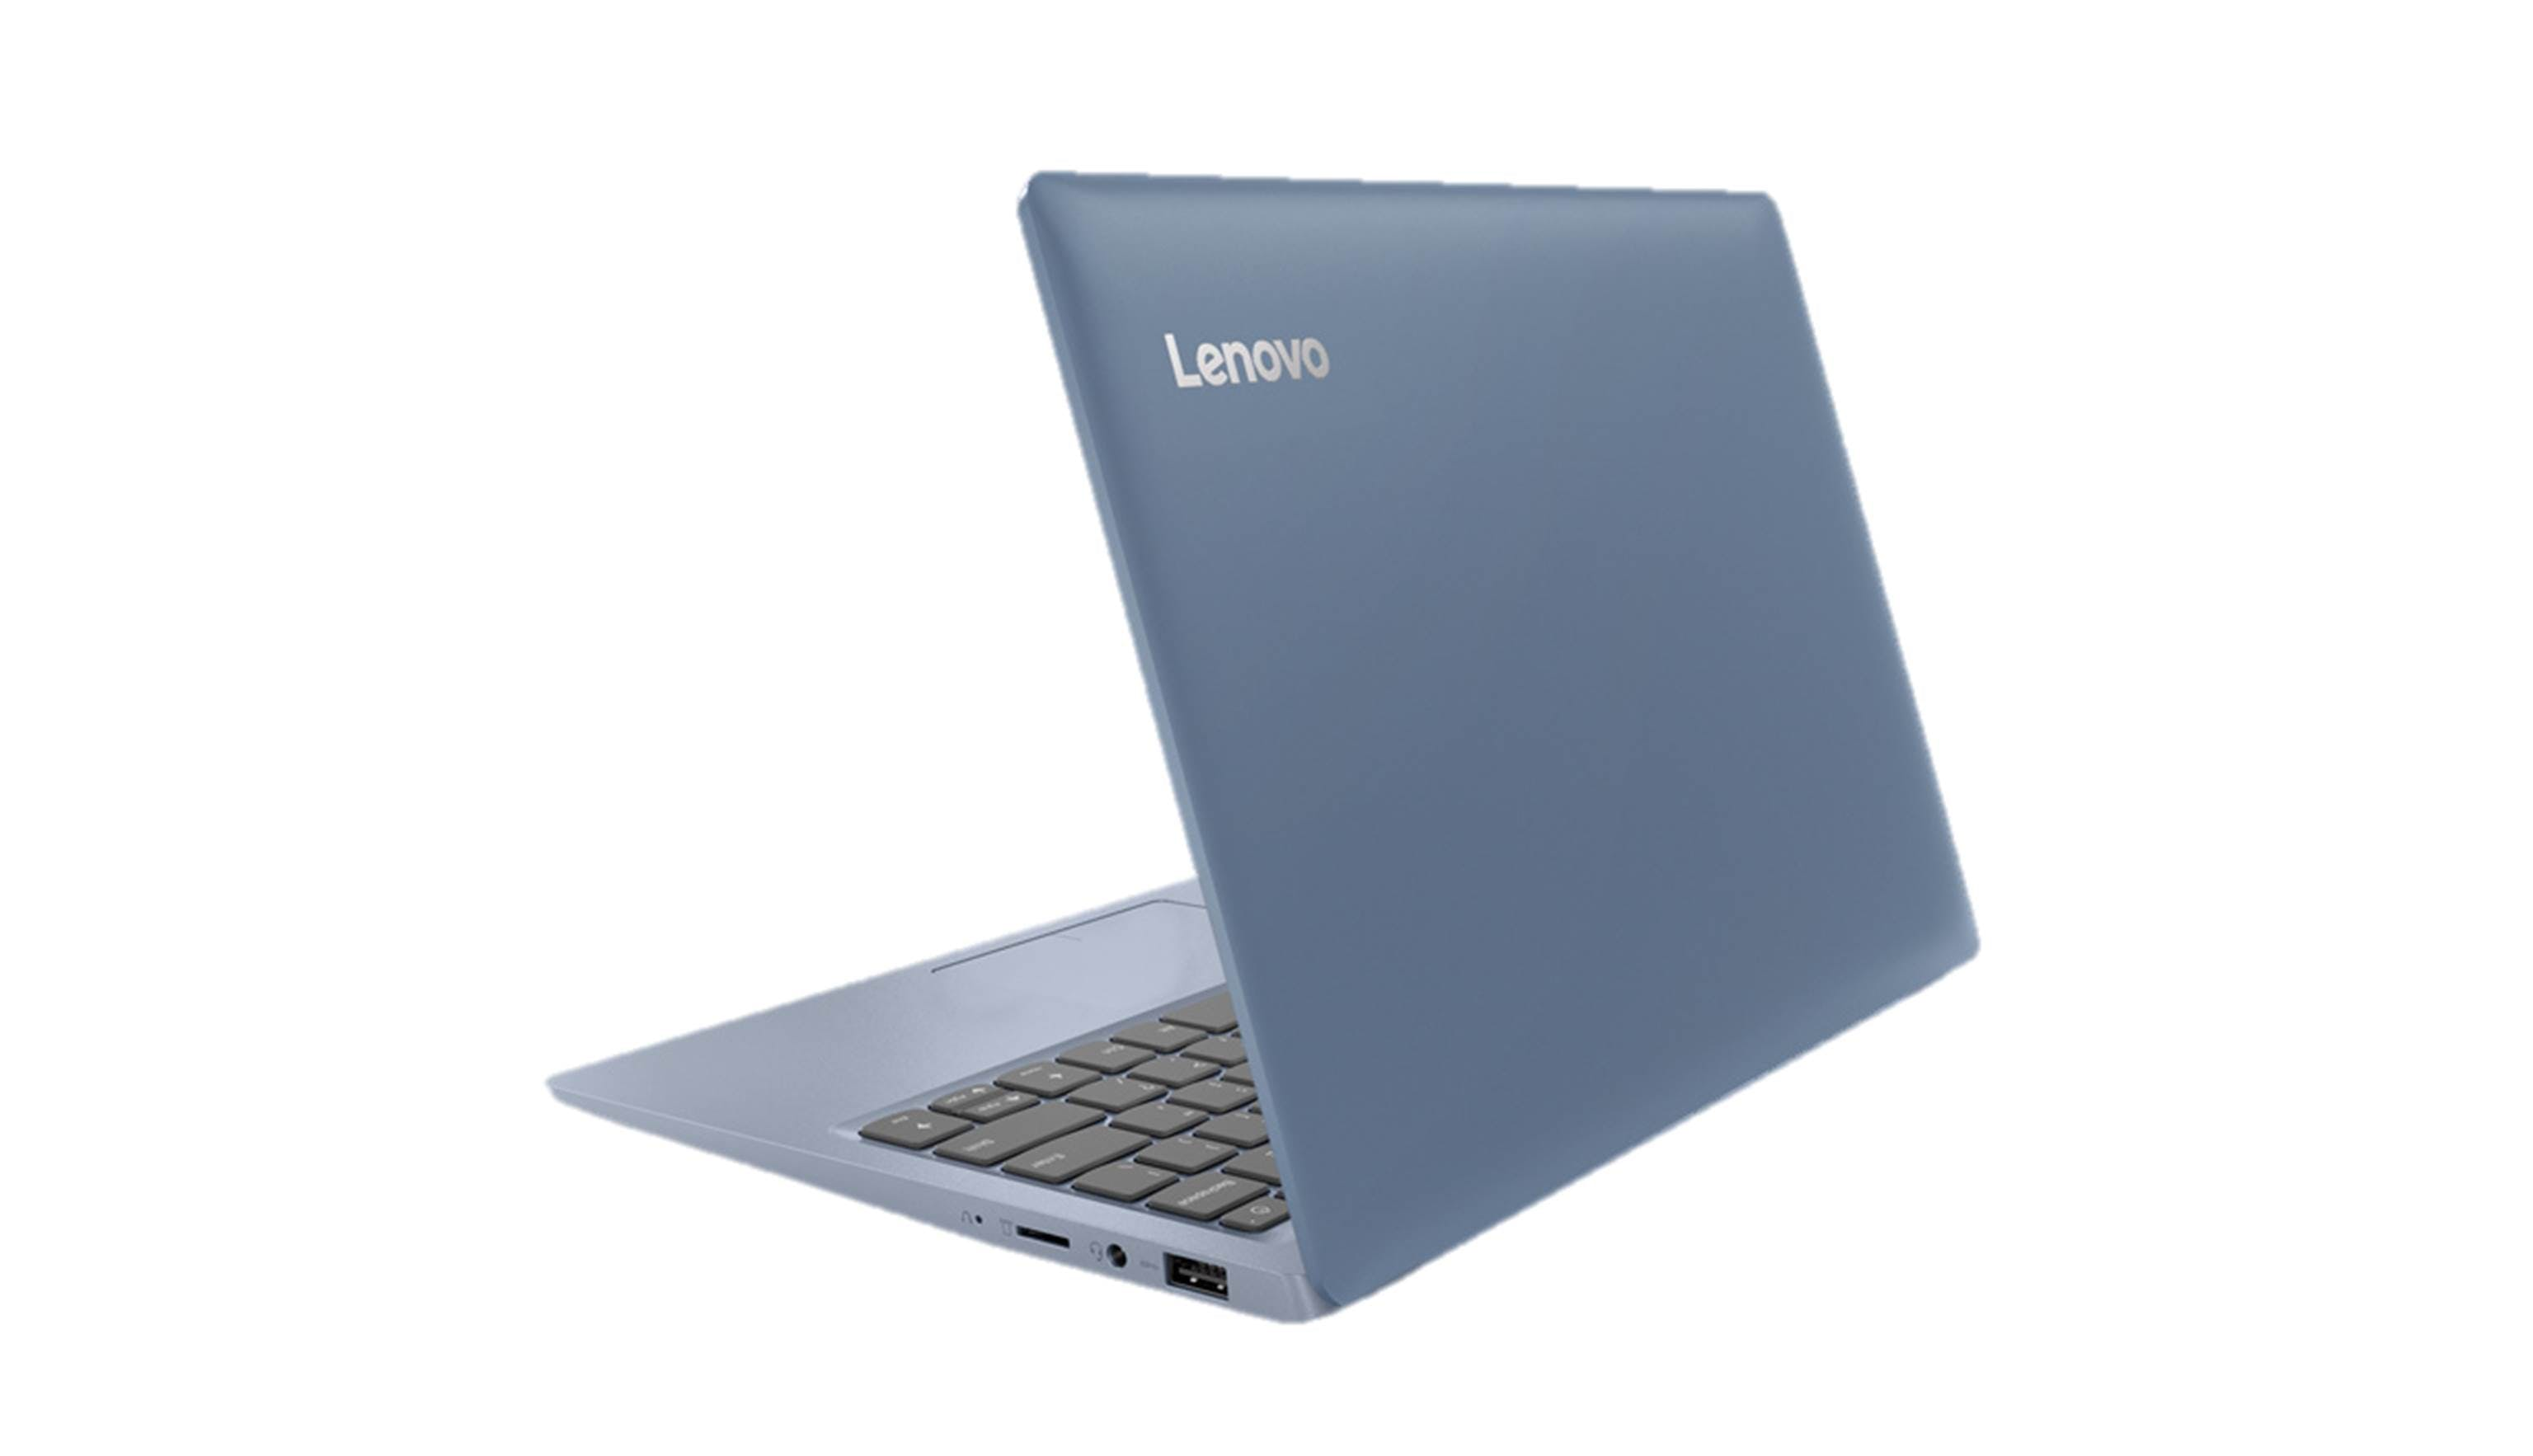 Lenovo_Ideapad_120S_11_2GB_RAM_-_Denim_Blue_(1)_26ks-ip